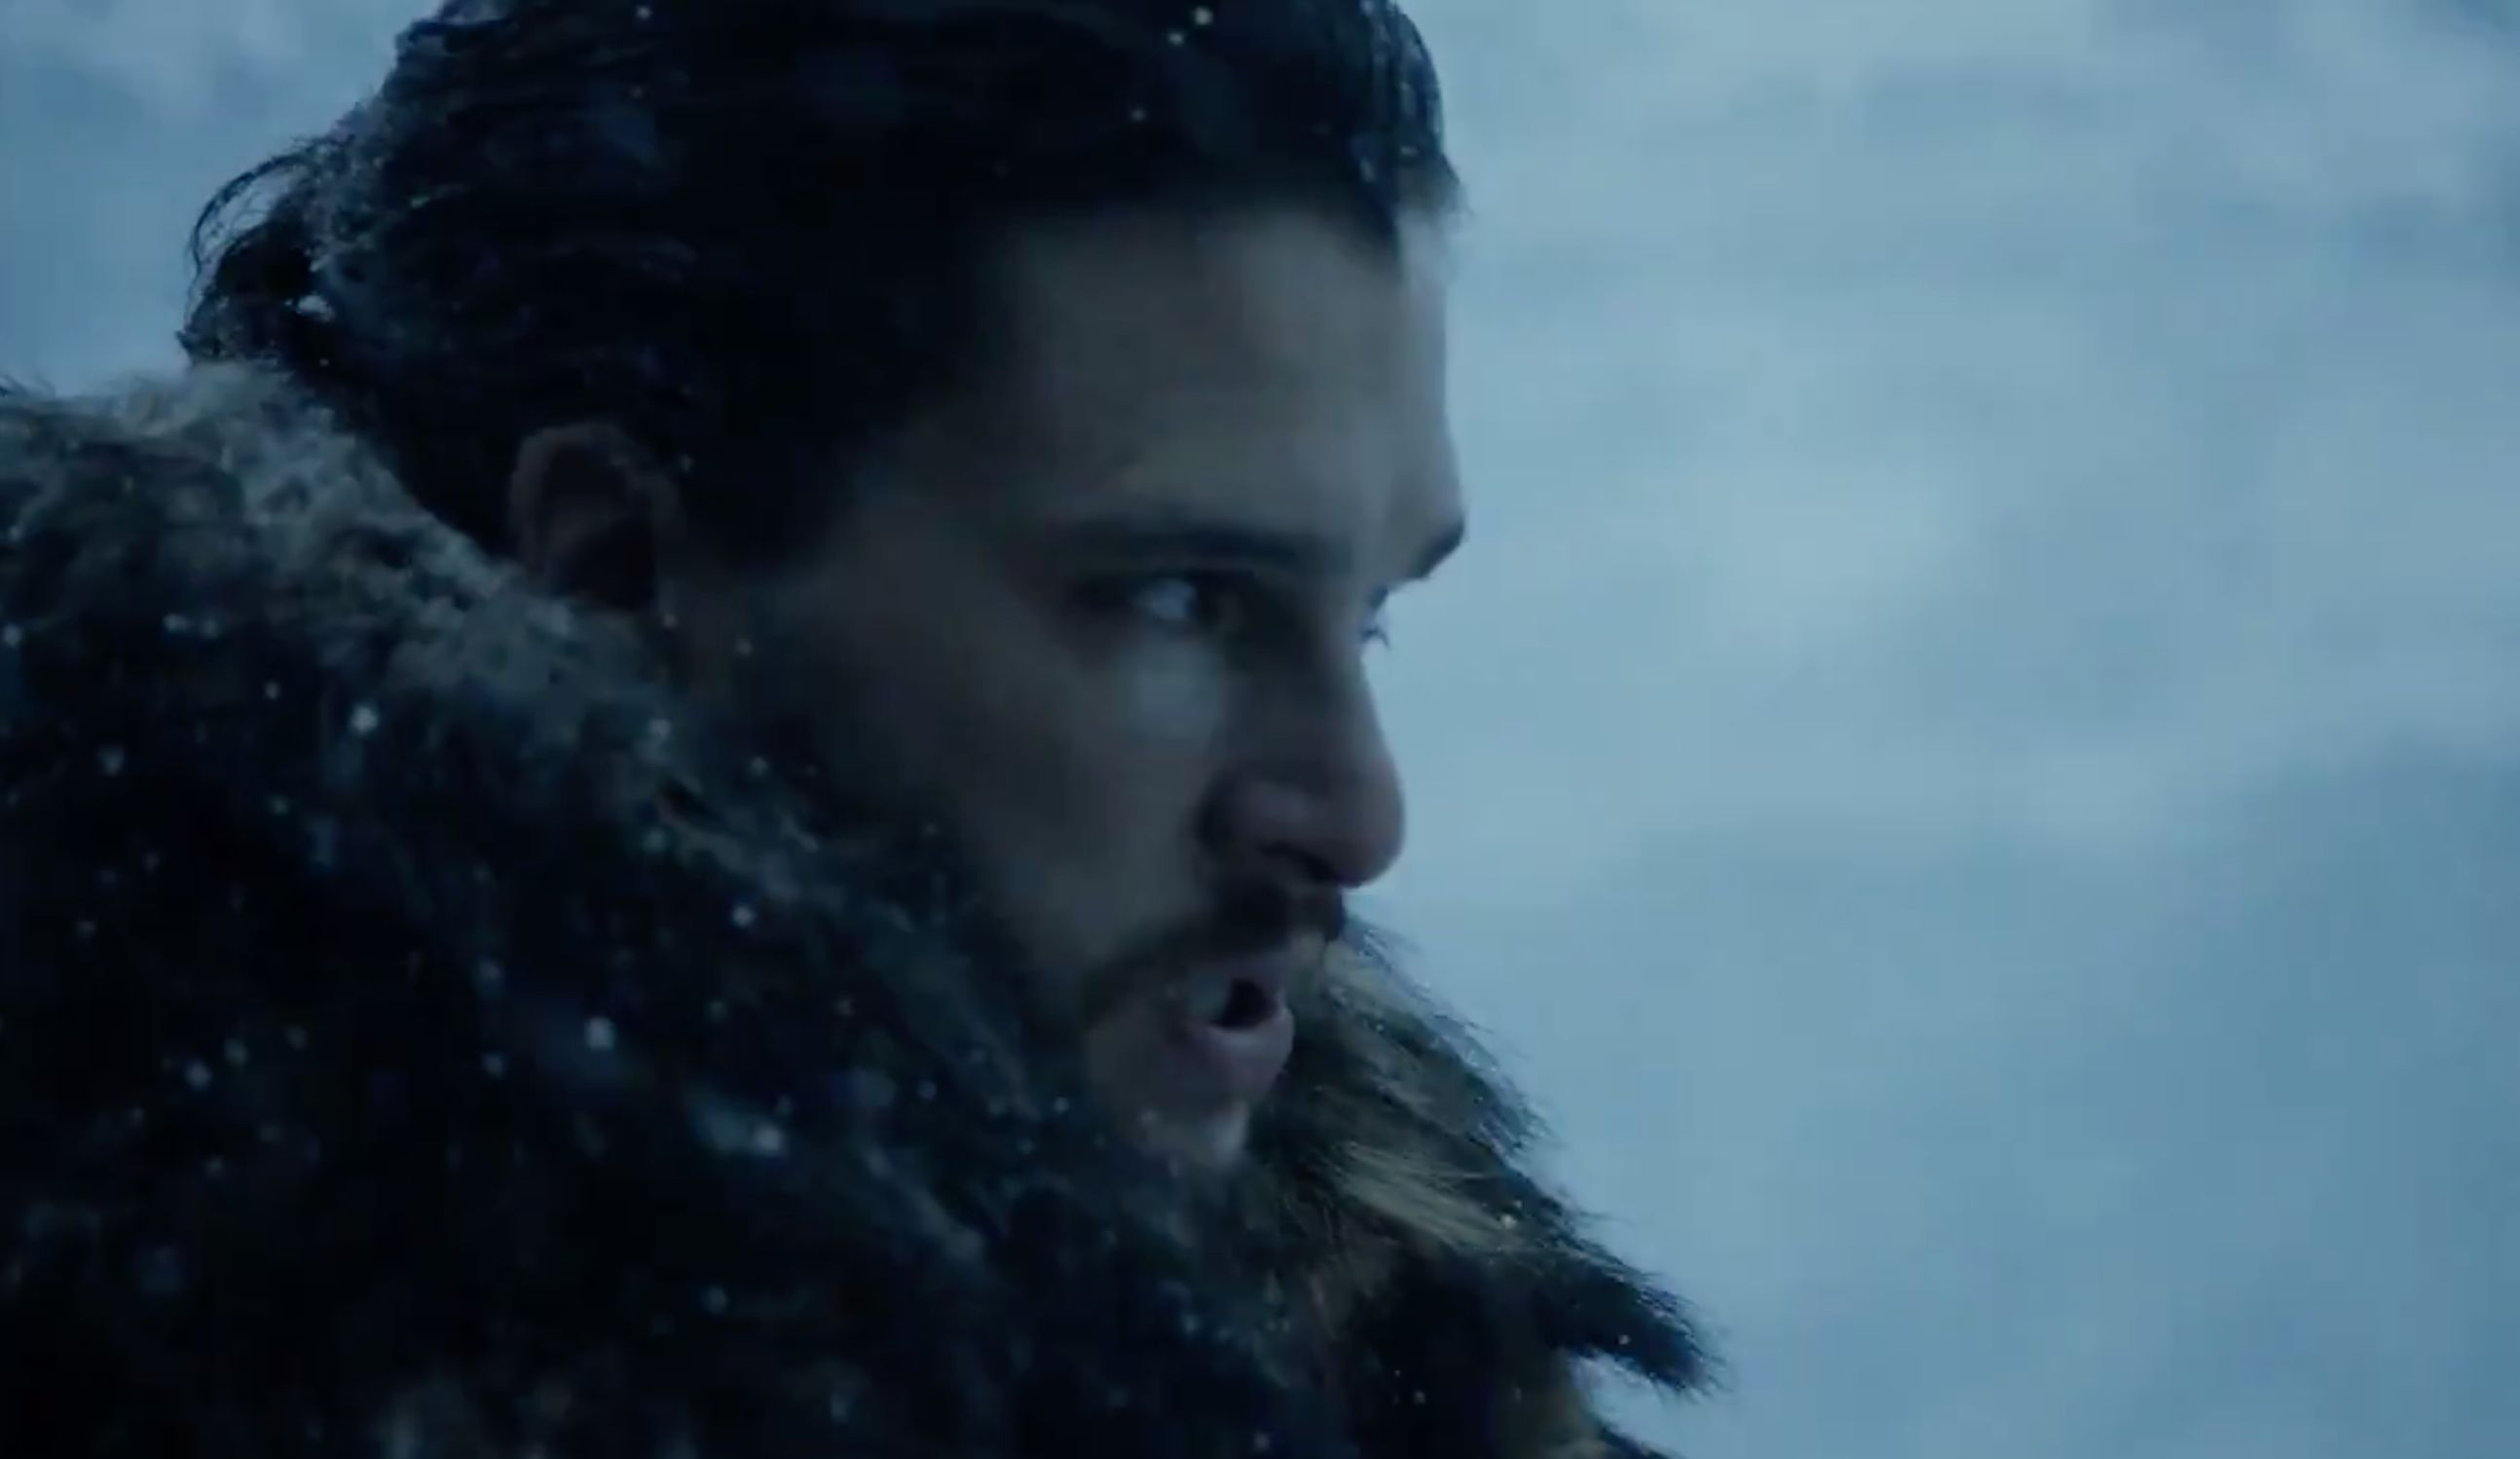 HBO has released new footage from Season 8 of Game of Thrones